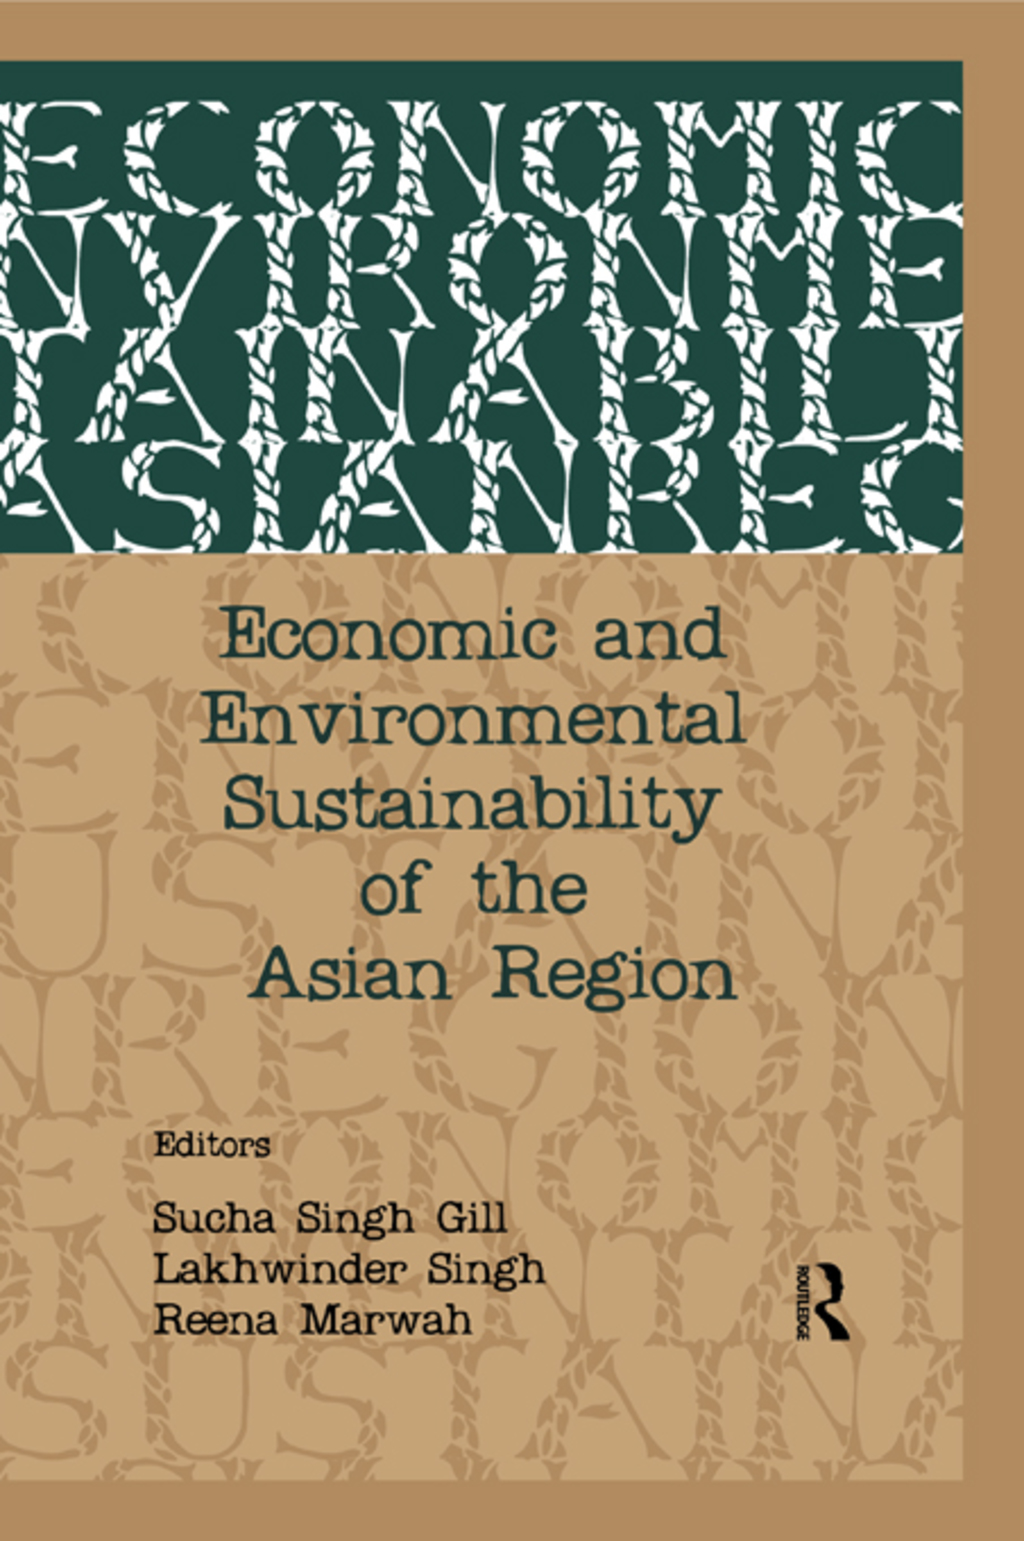 Economic and Environmental Sustainability of the Asian Region (ebook) eBooks